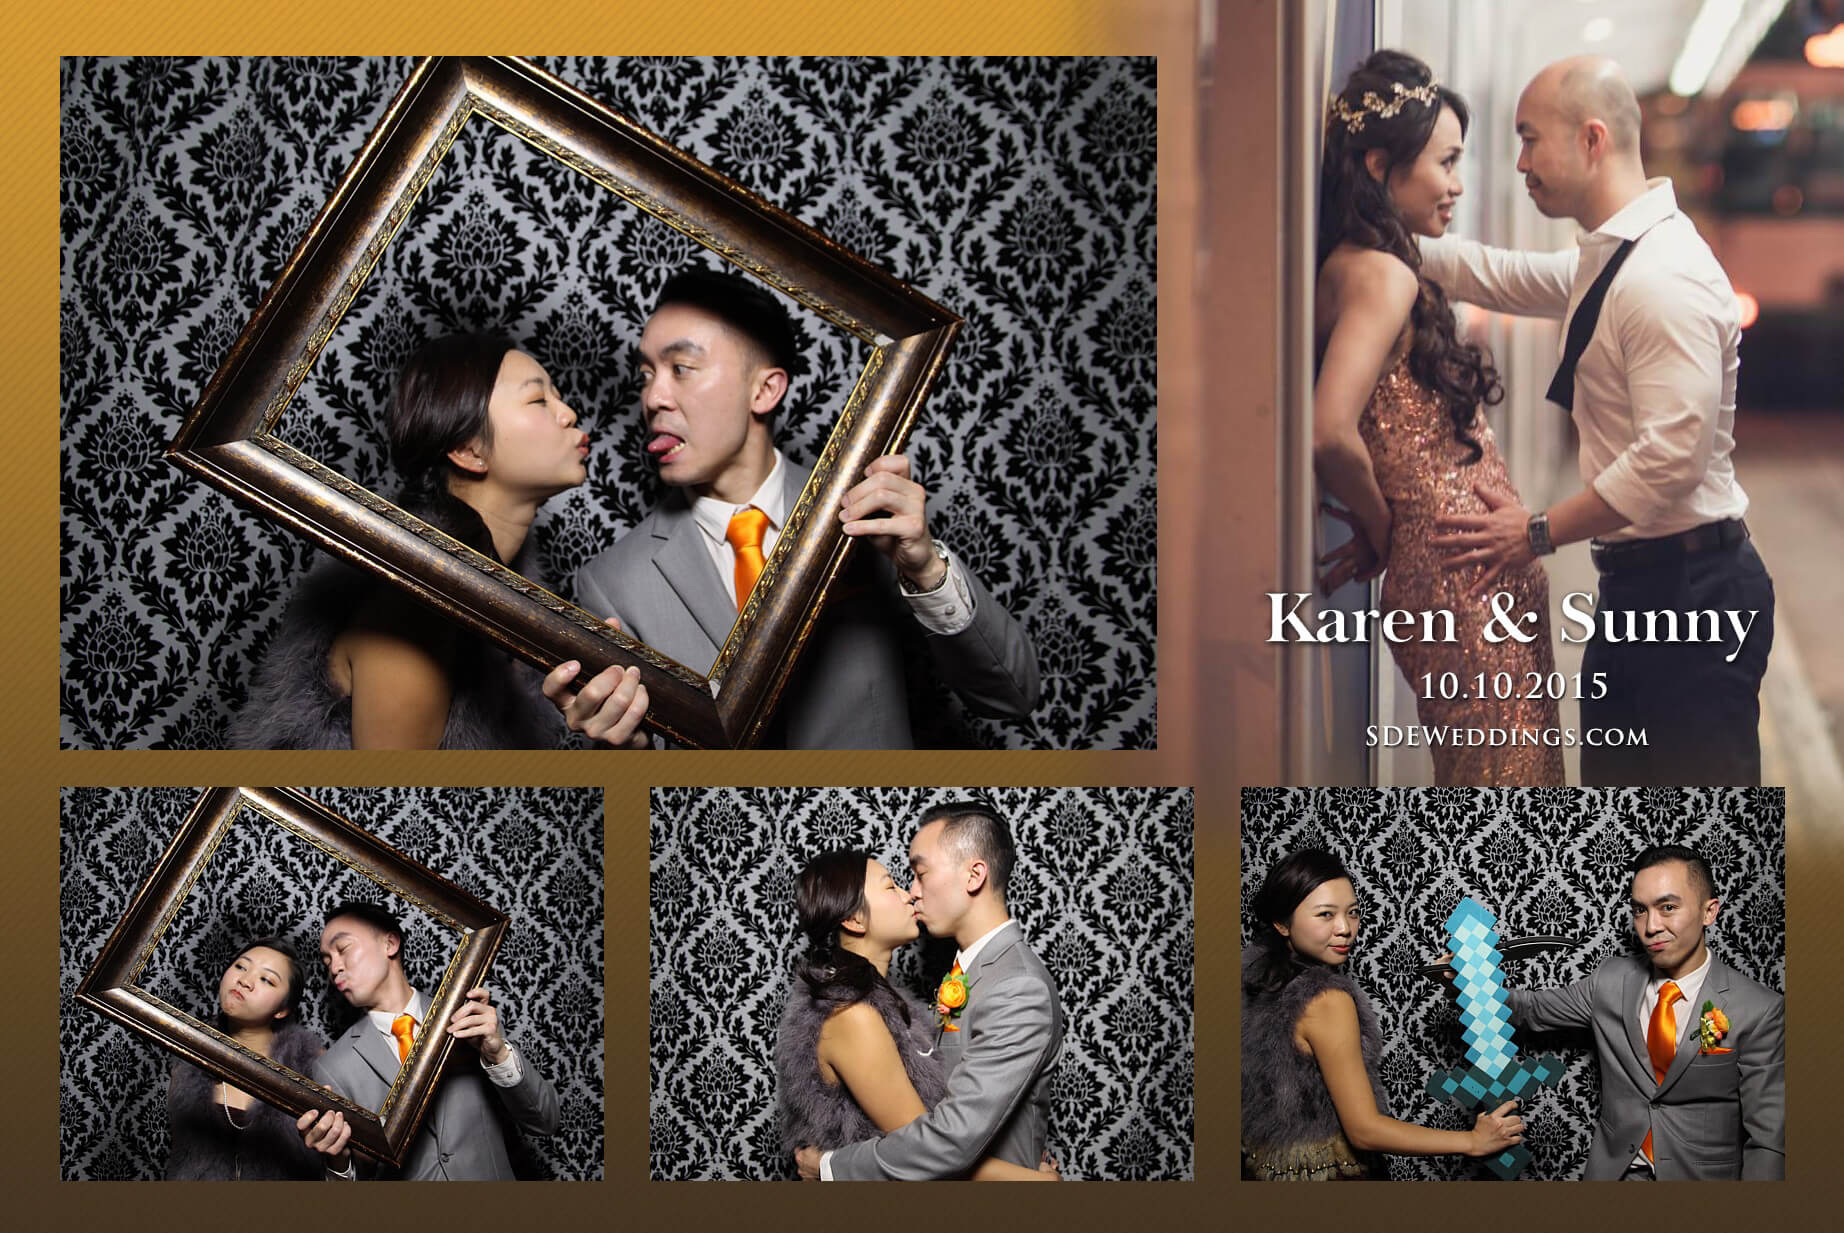 Toronto Fantasy Farm Wedding Photo Booth Rental 3